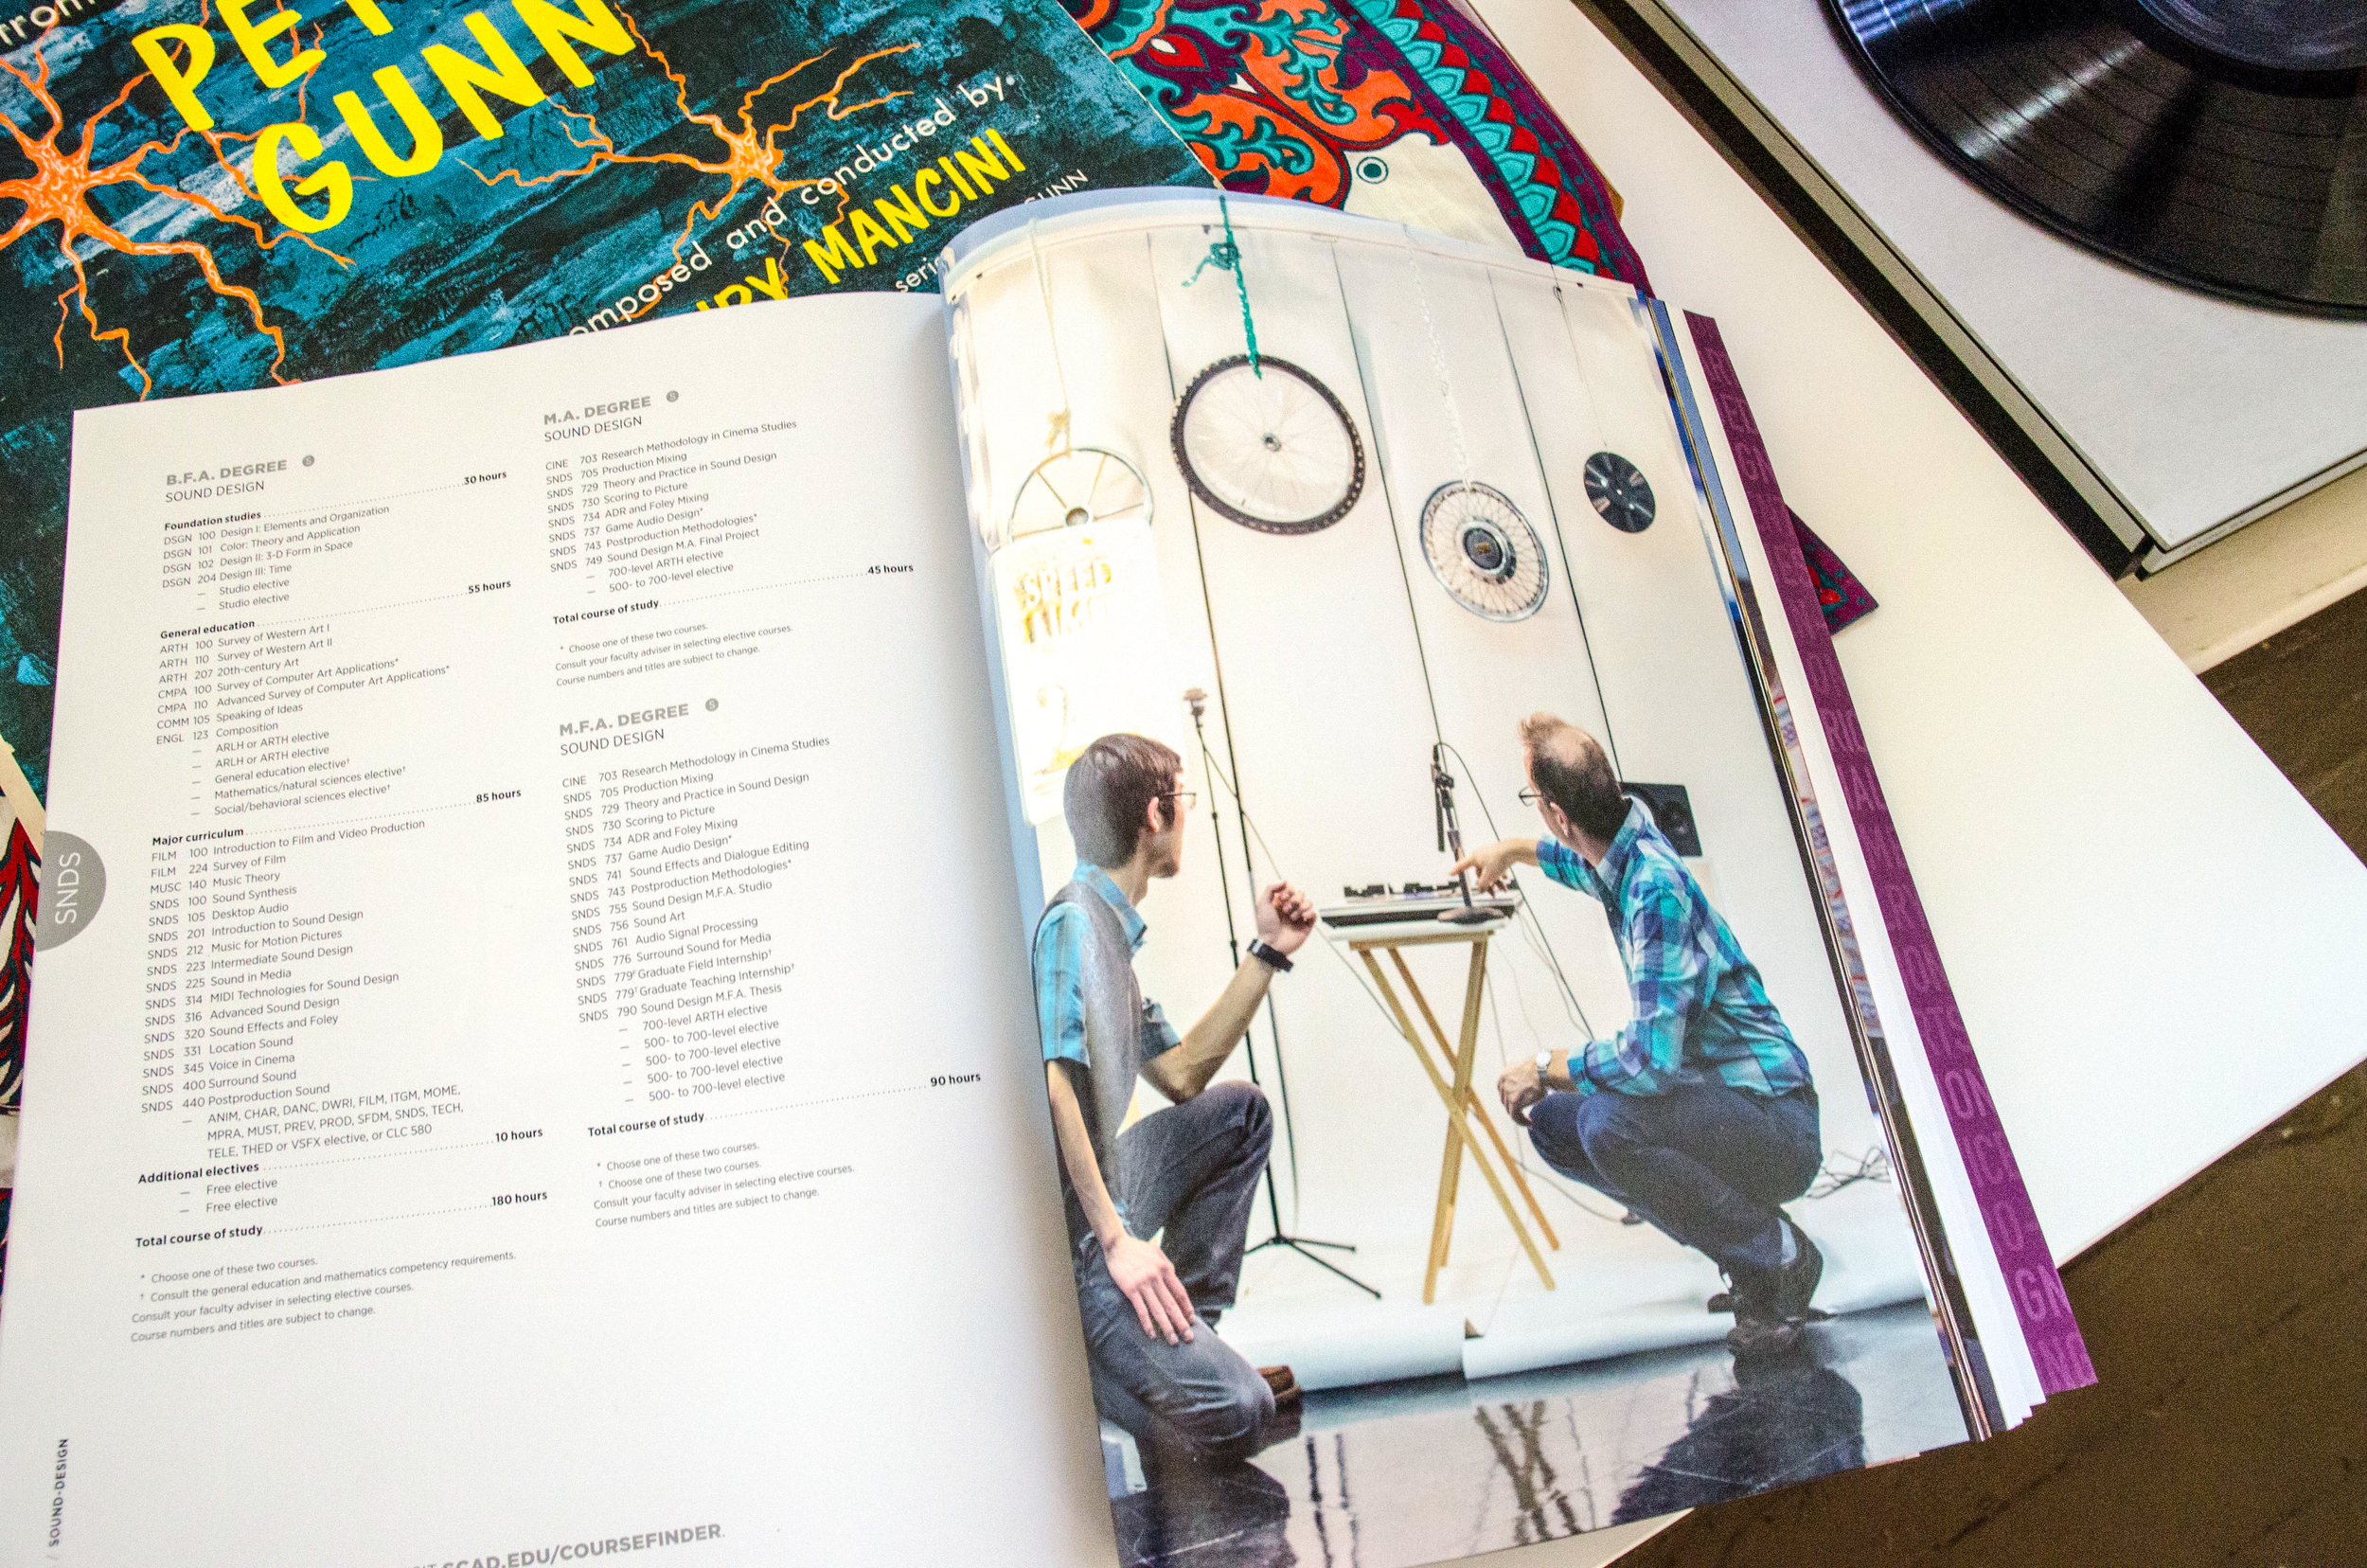 Xiao's sound art project was selected by Savannah College of Art and Design Catalog.